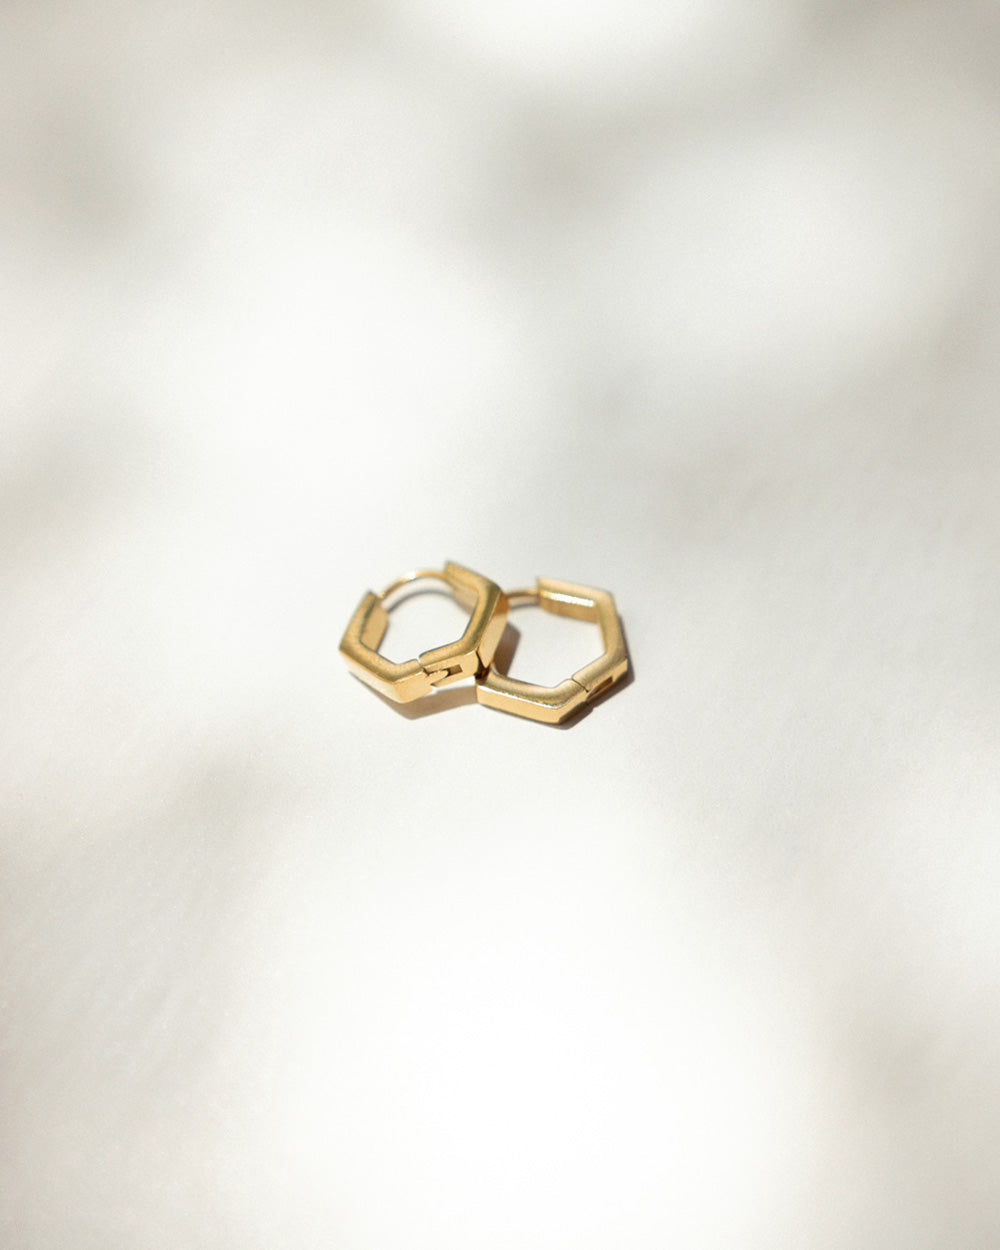 Minimalist style jewellery for both women and men from modern accessories label The Hexad